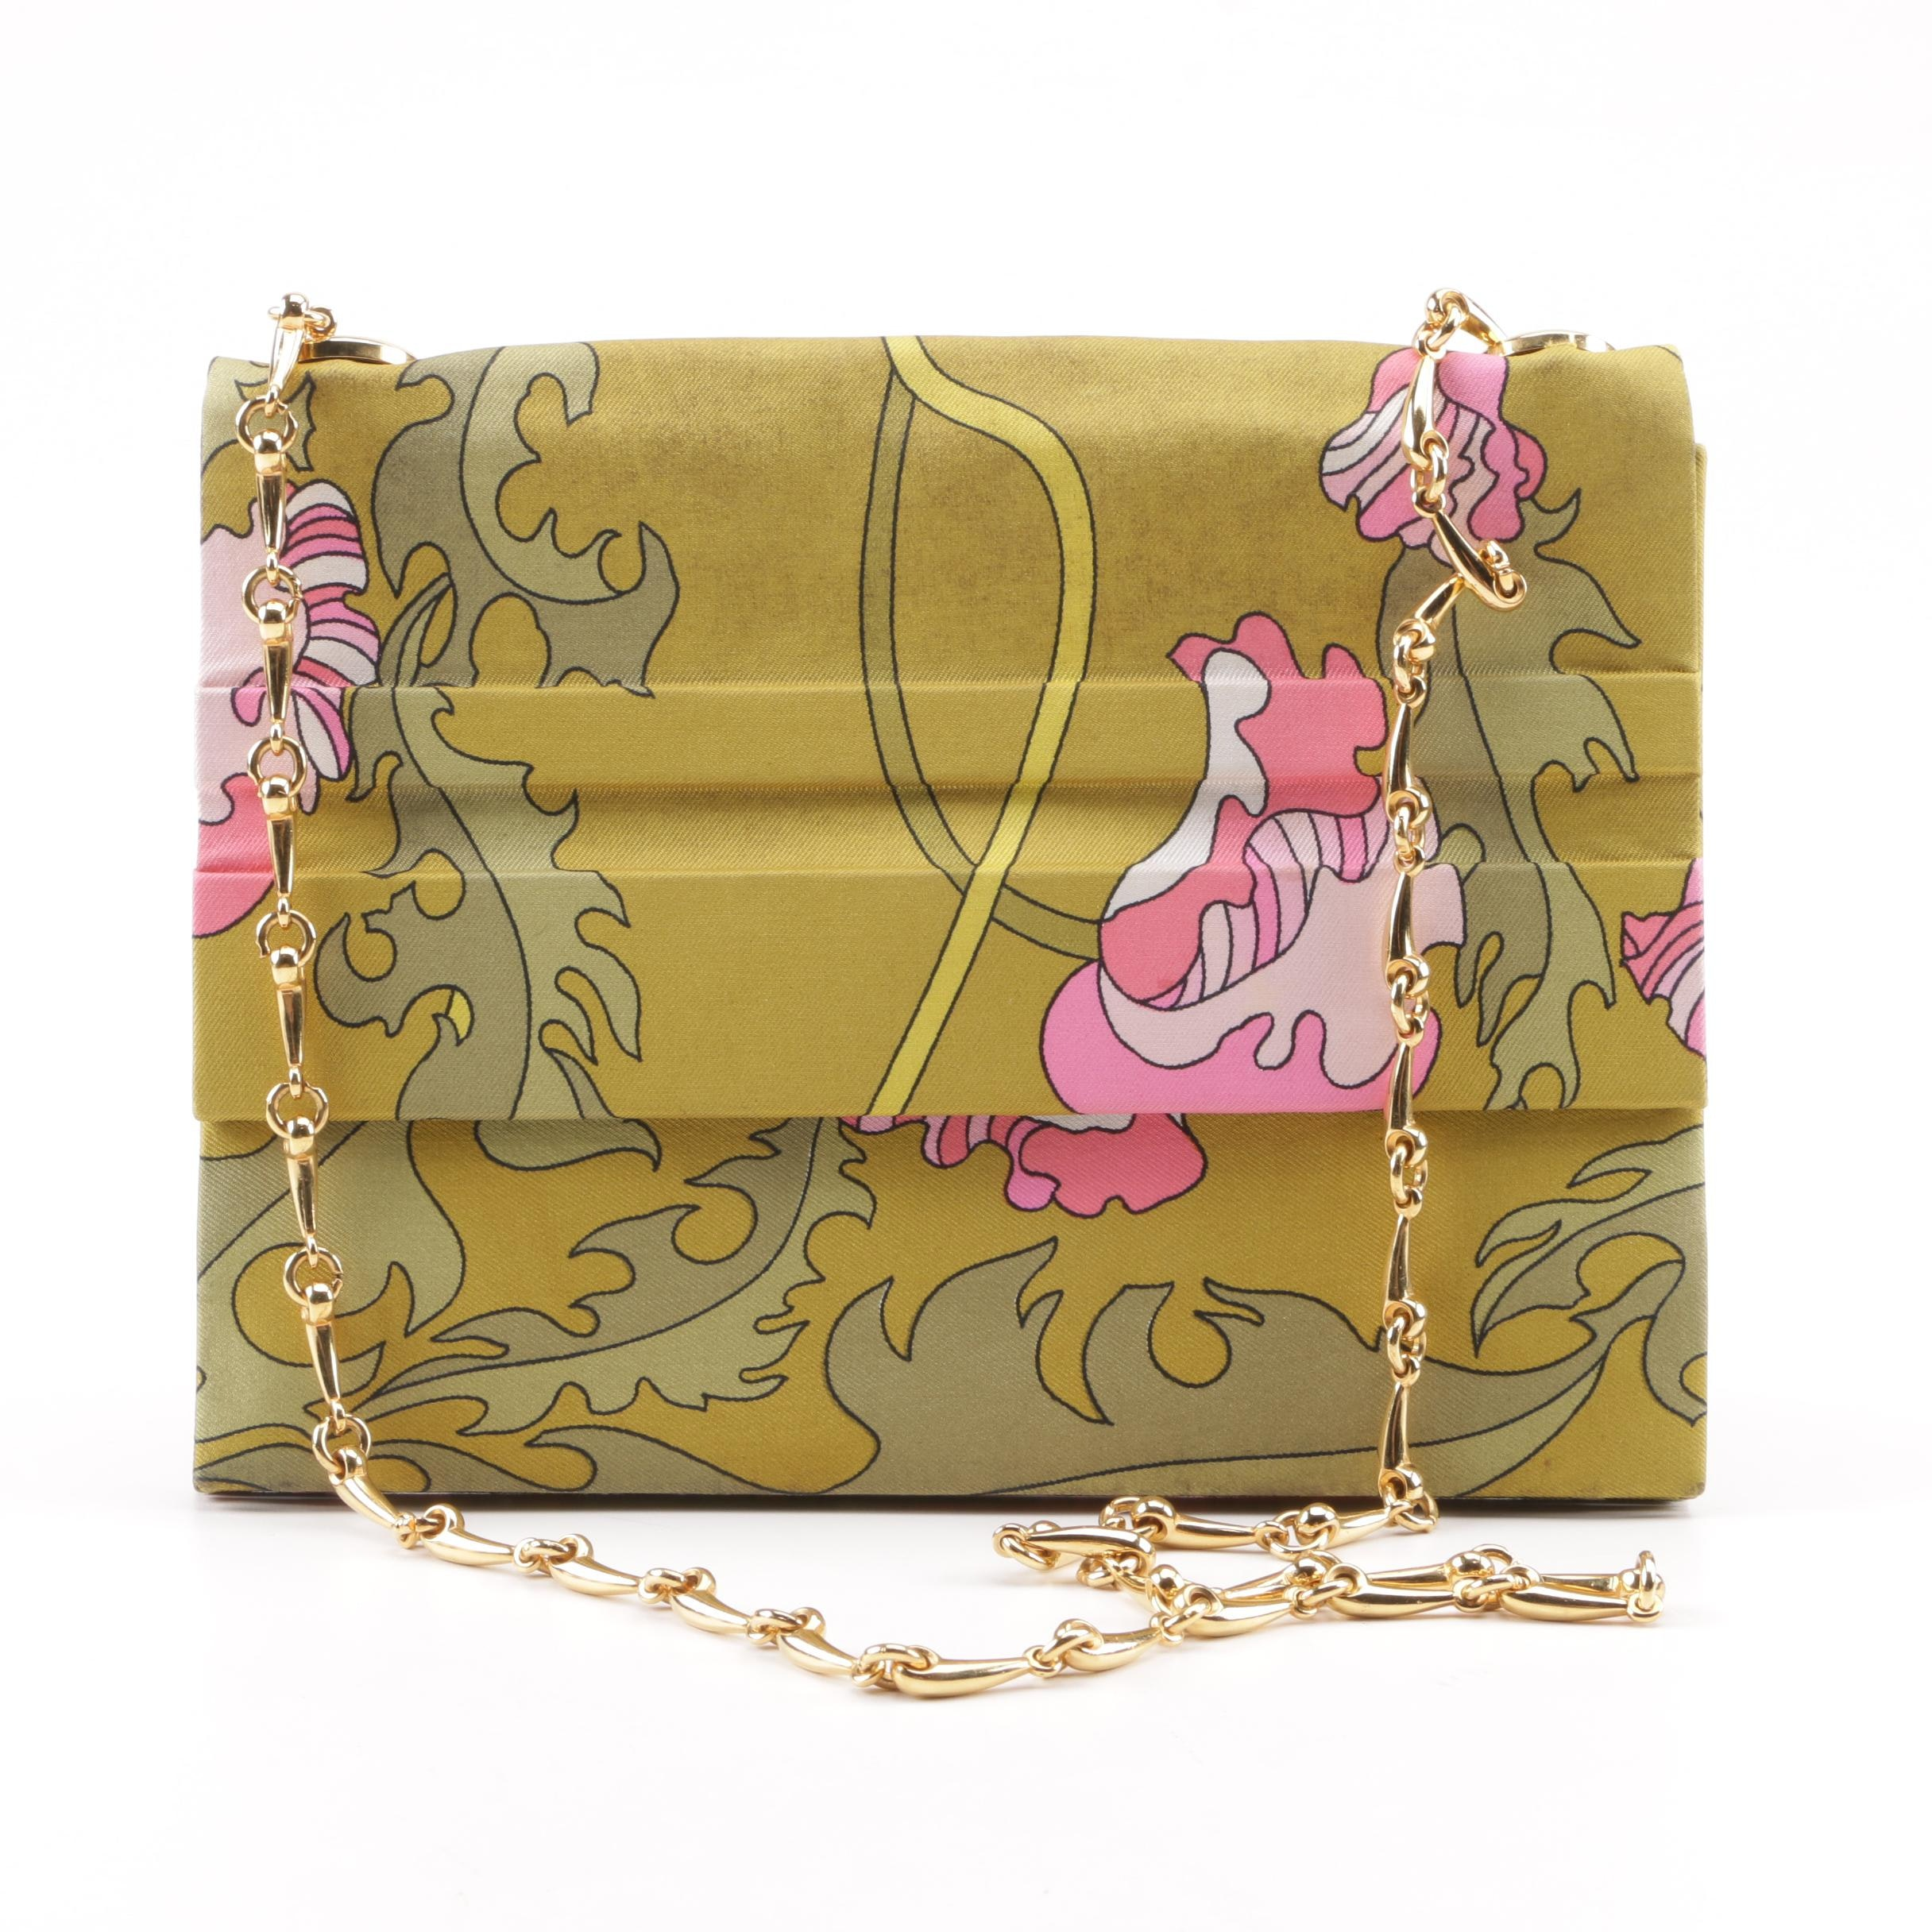 Vintage Emilio Pucci Green and Pink Botanical Print Shoulder Bag